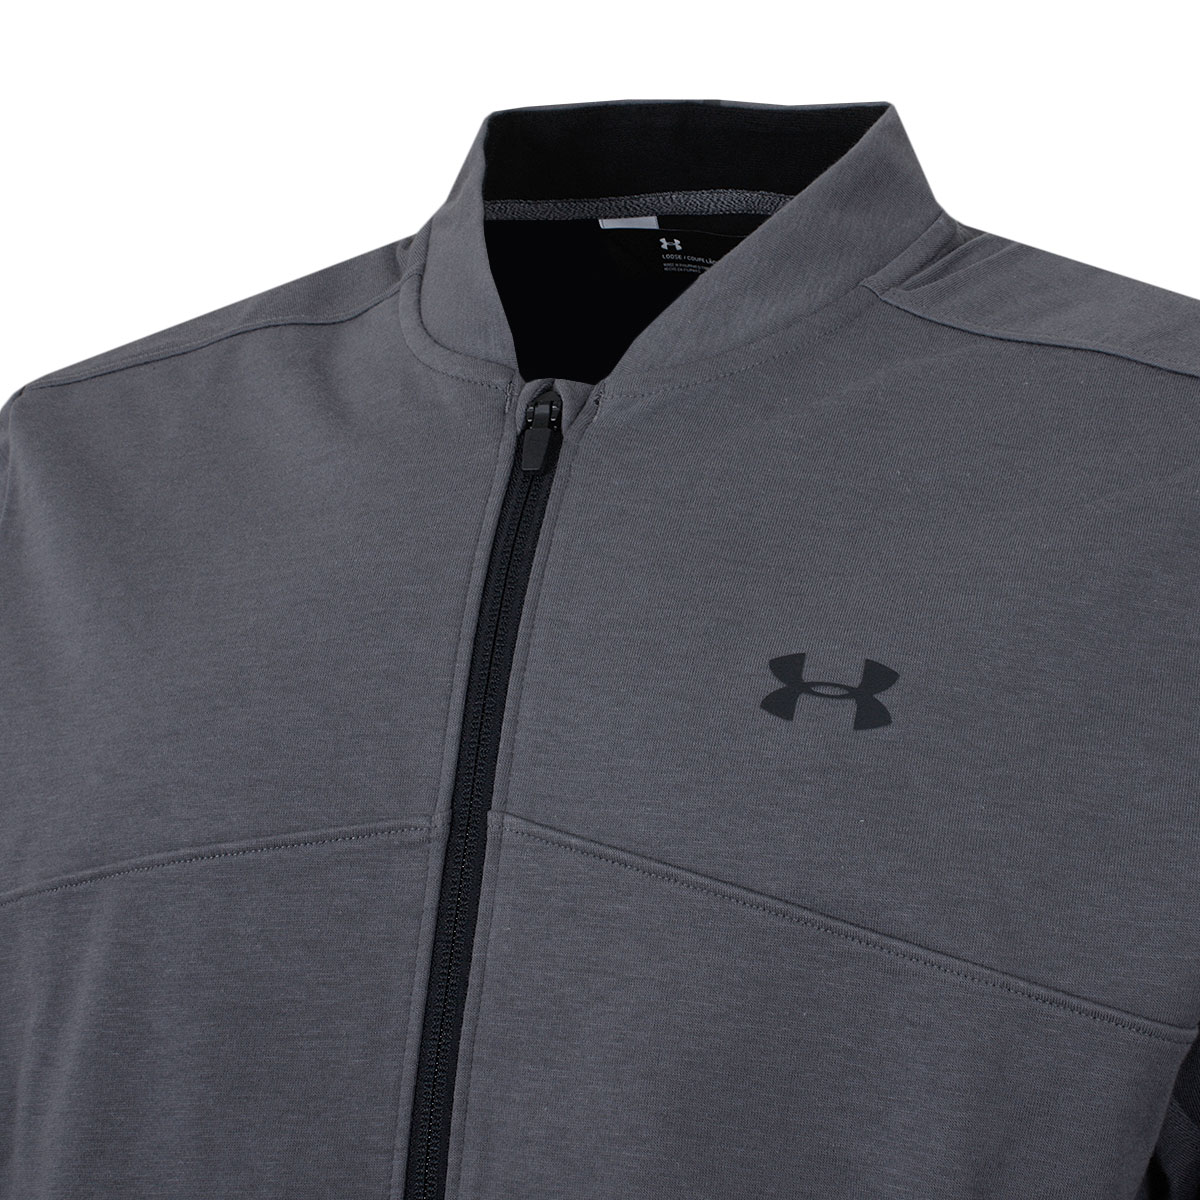 Under-Armour-Mens-UA-Storm-Full-Zip-Water-Repellent-Golf-Jacket-50-OFF-RRP thumbnail 8